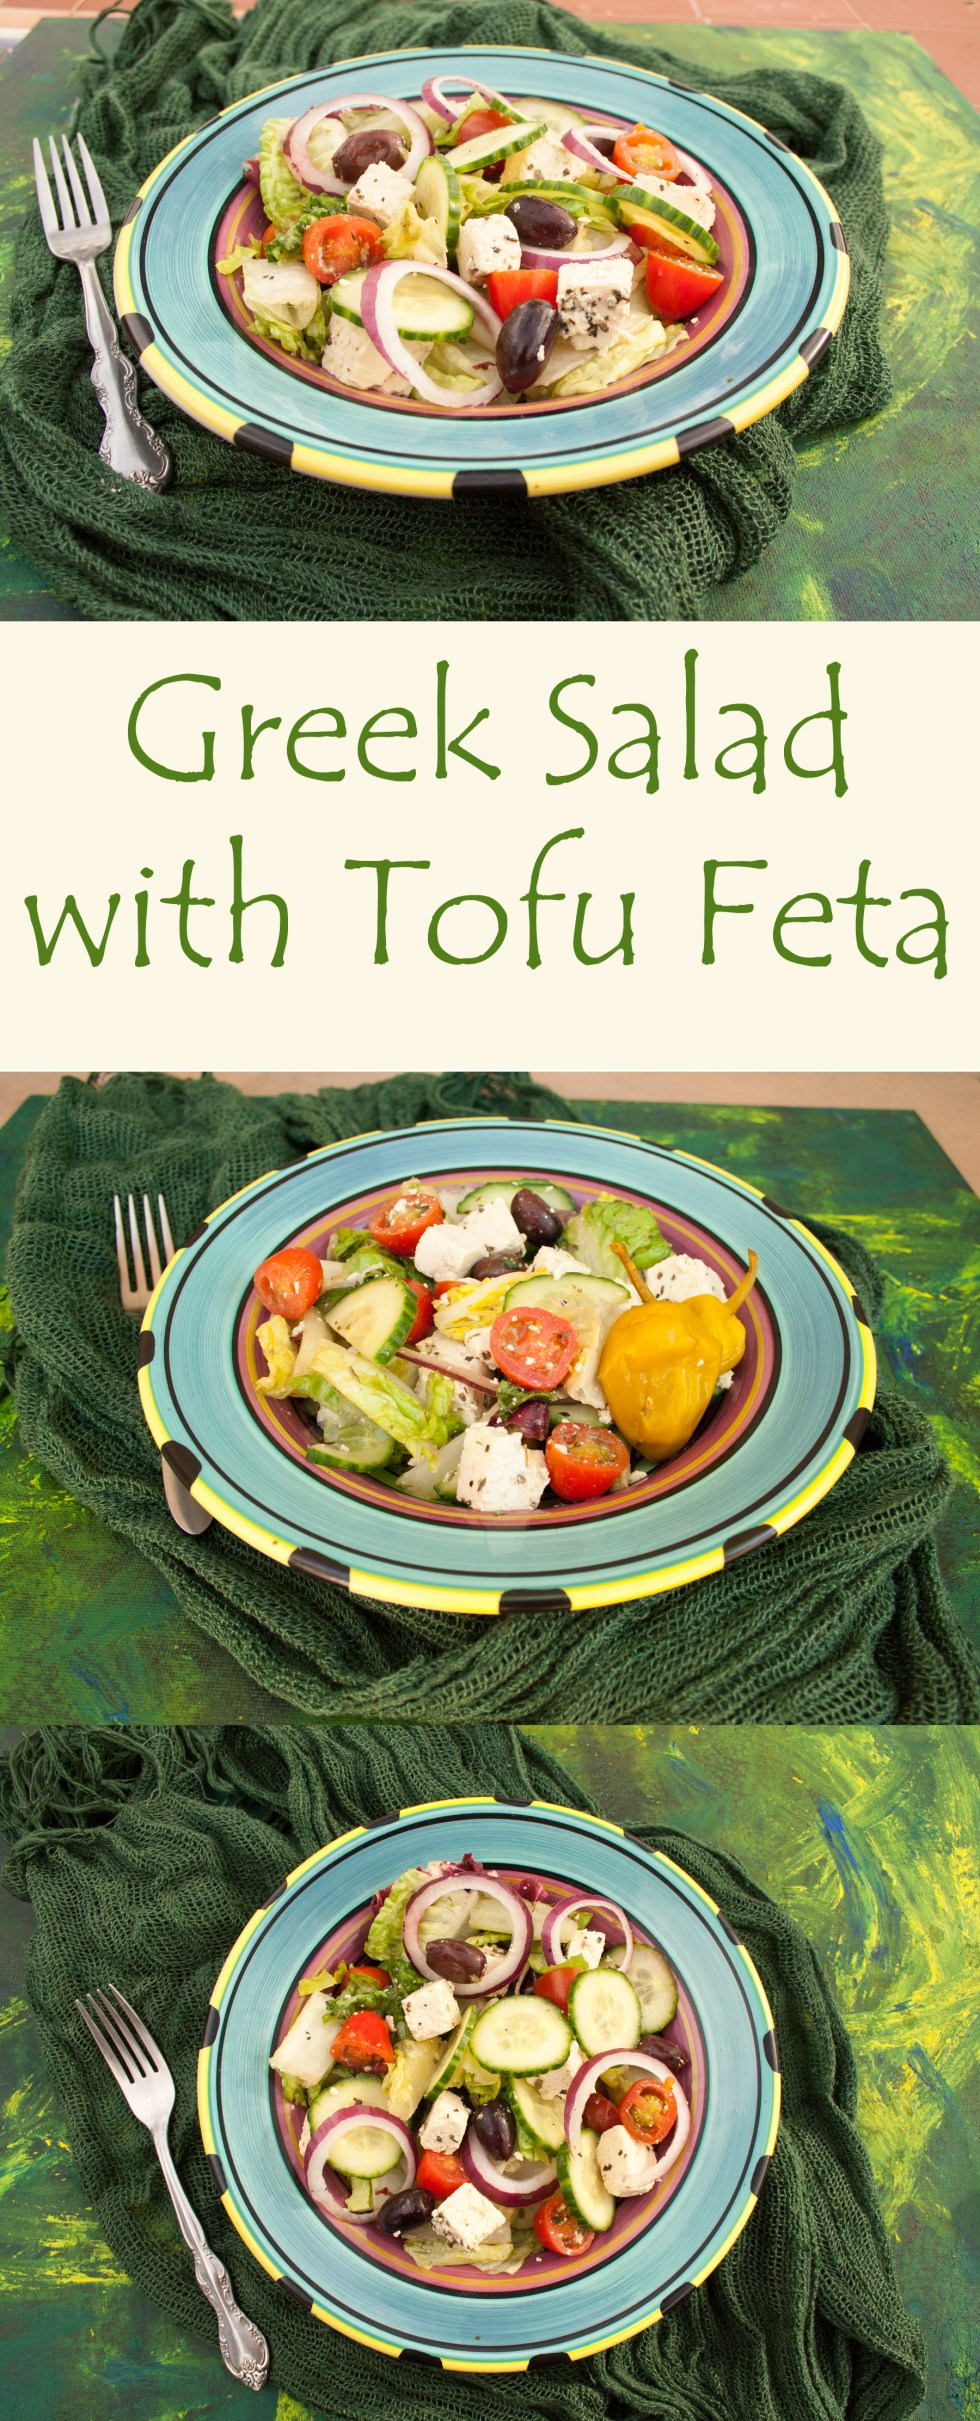 Greek Salad with Tofu Feta - For those of you cutting out dairy this vegan salad will satisfy your Greek salad cravings!